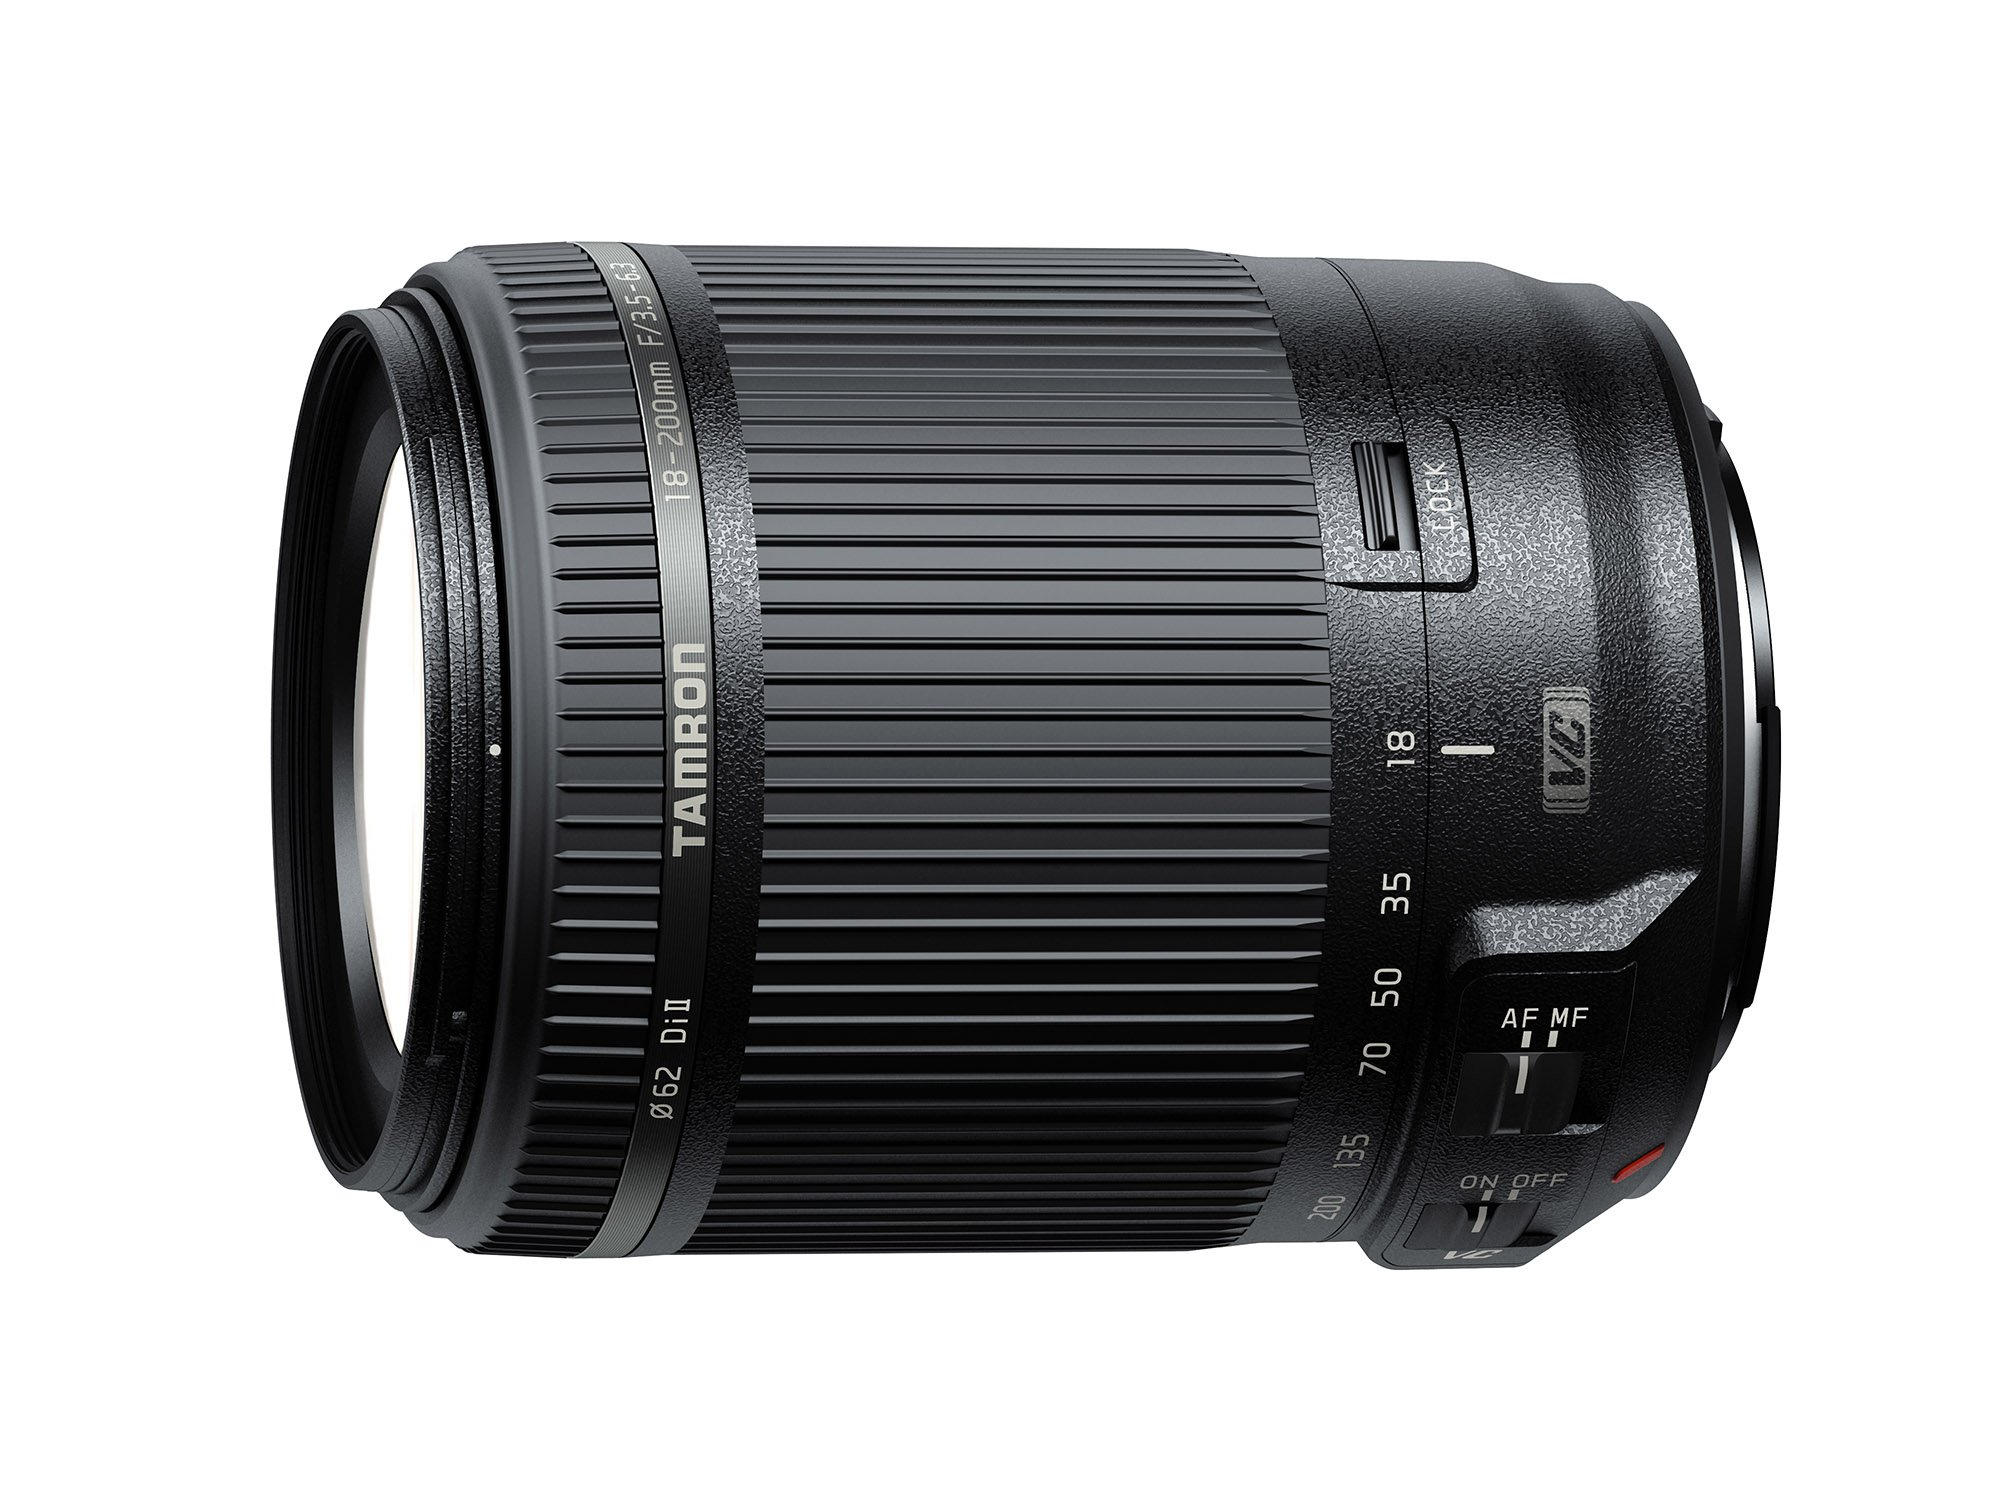 Tamron AF 18-200mm F/3.5-6.3 Di-II VC All-in-One Zoom for Canon APS-C Digital SLR by Tamron